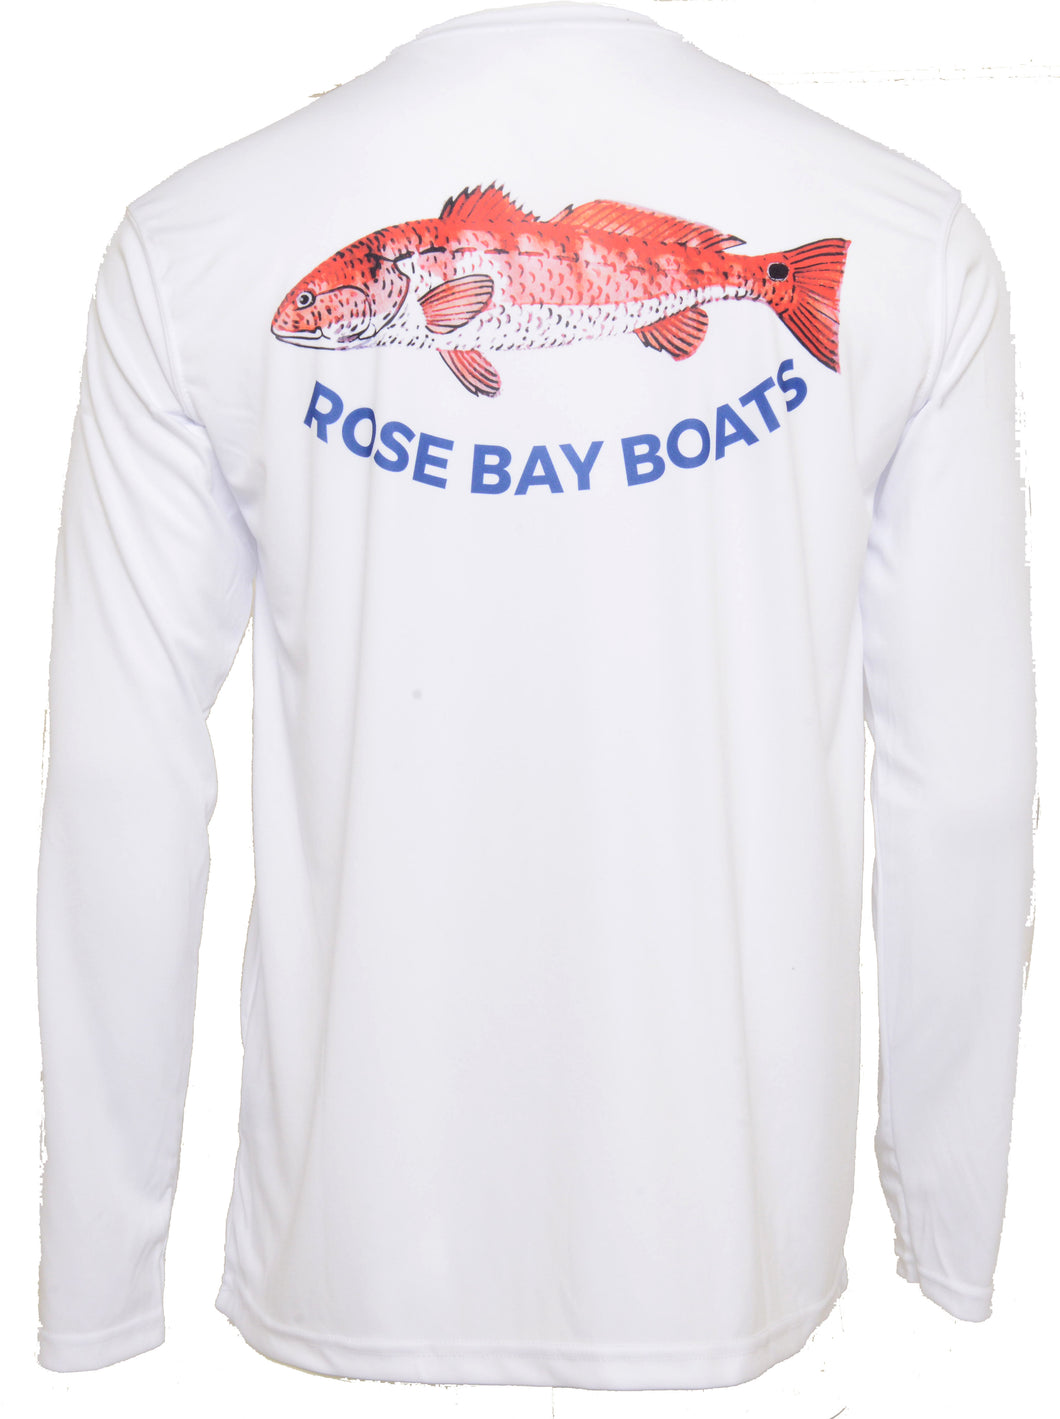 Rose Bay Boats Redfish Performance Shirt - White